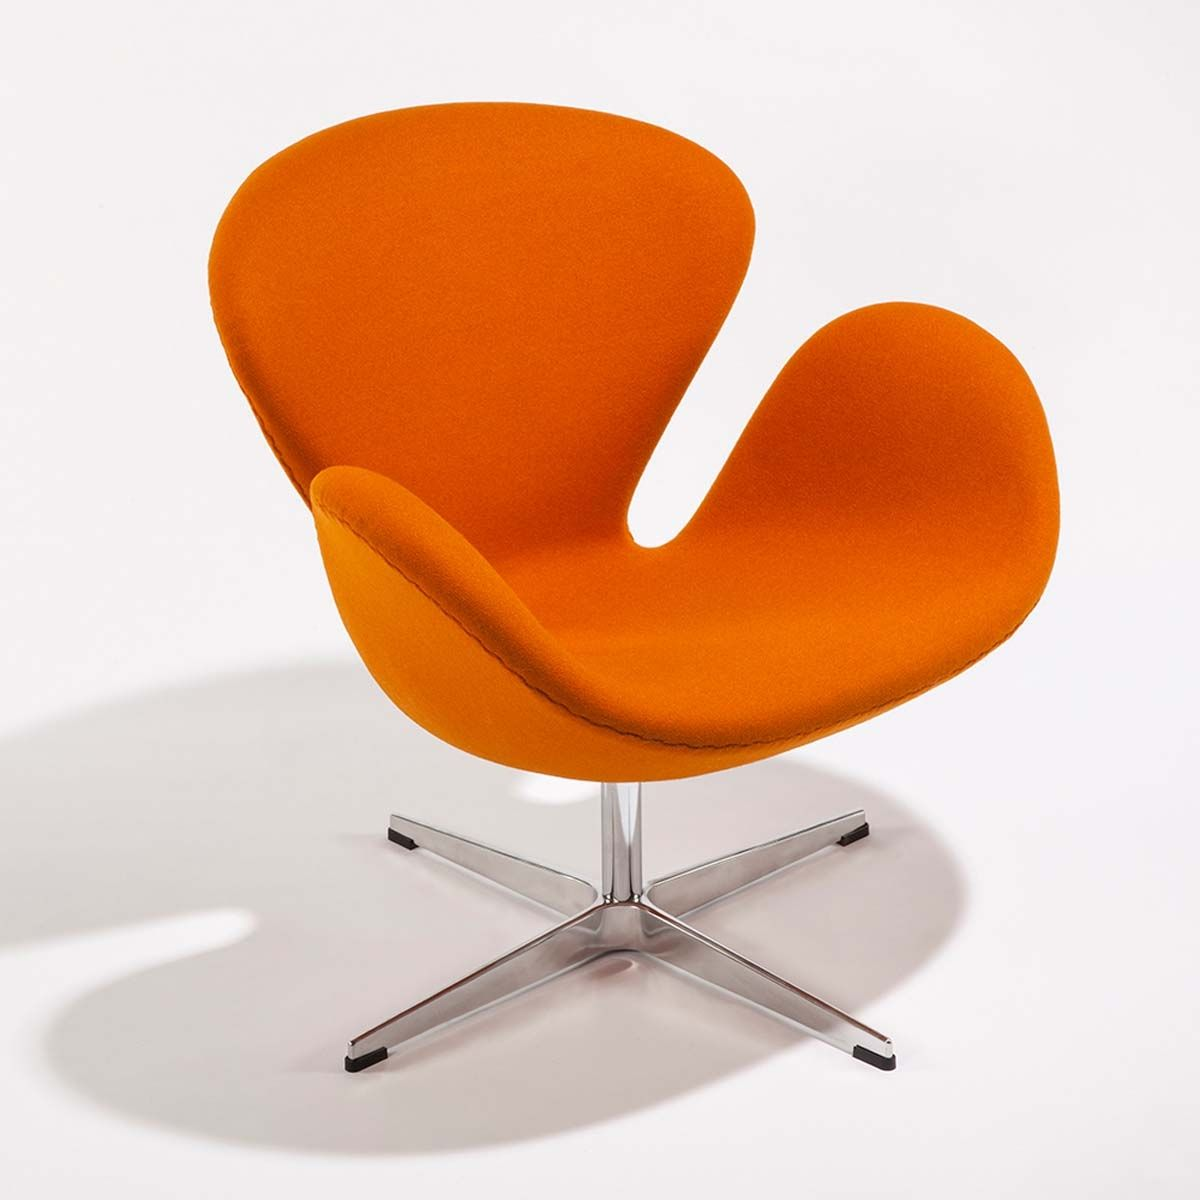 Orange Mid Century Modern Chair Arne Jacobsen Orange Swan Chair Mid Century Modern Arm